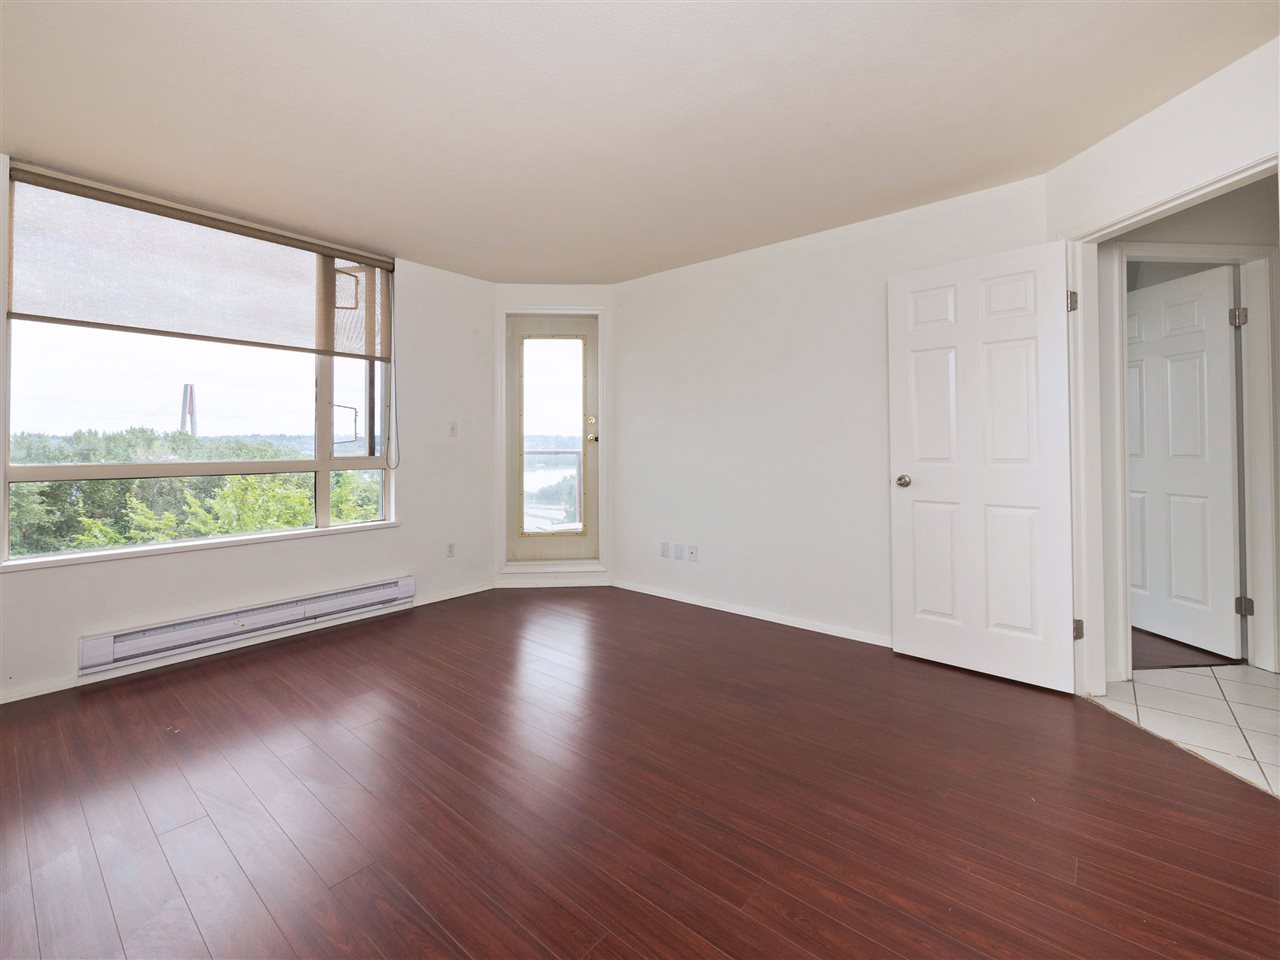 Condo Apartment at 503 38 LEOPOLD PLACE, Unit 503, New Westminster, British Columbia. Image 11